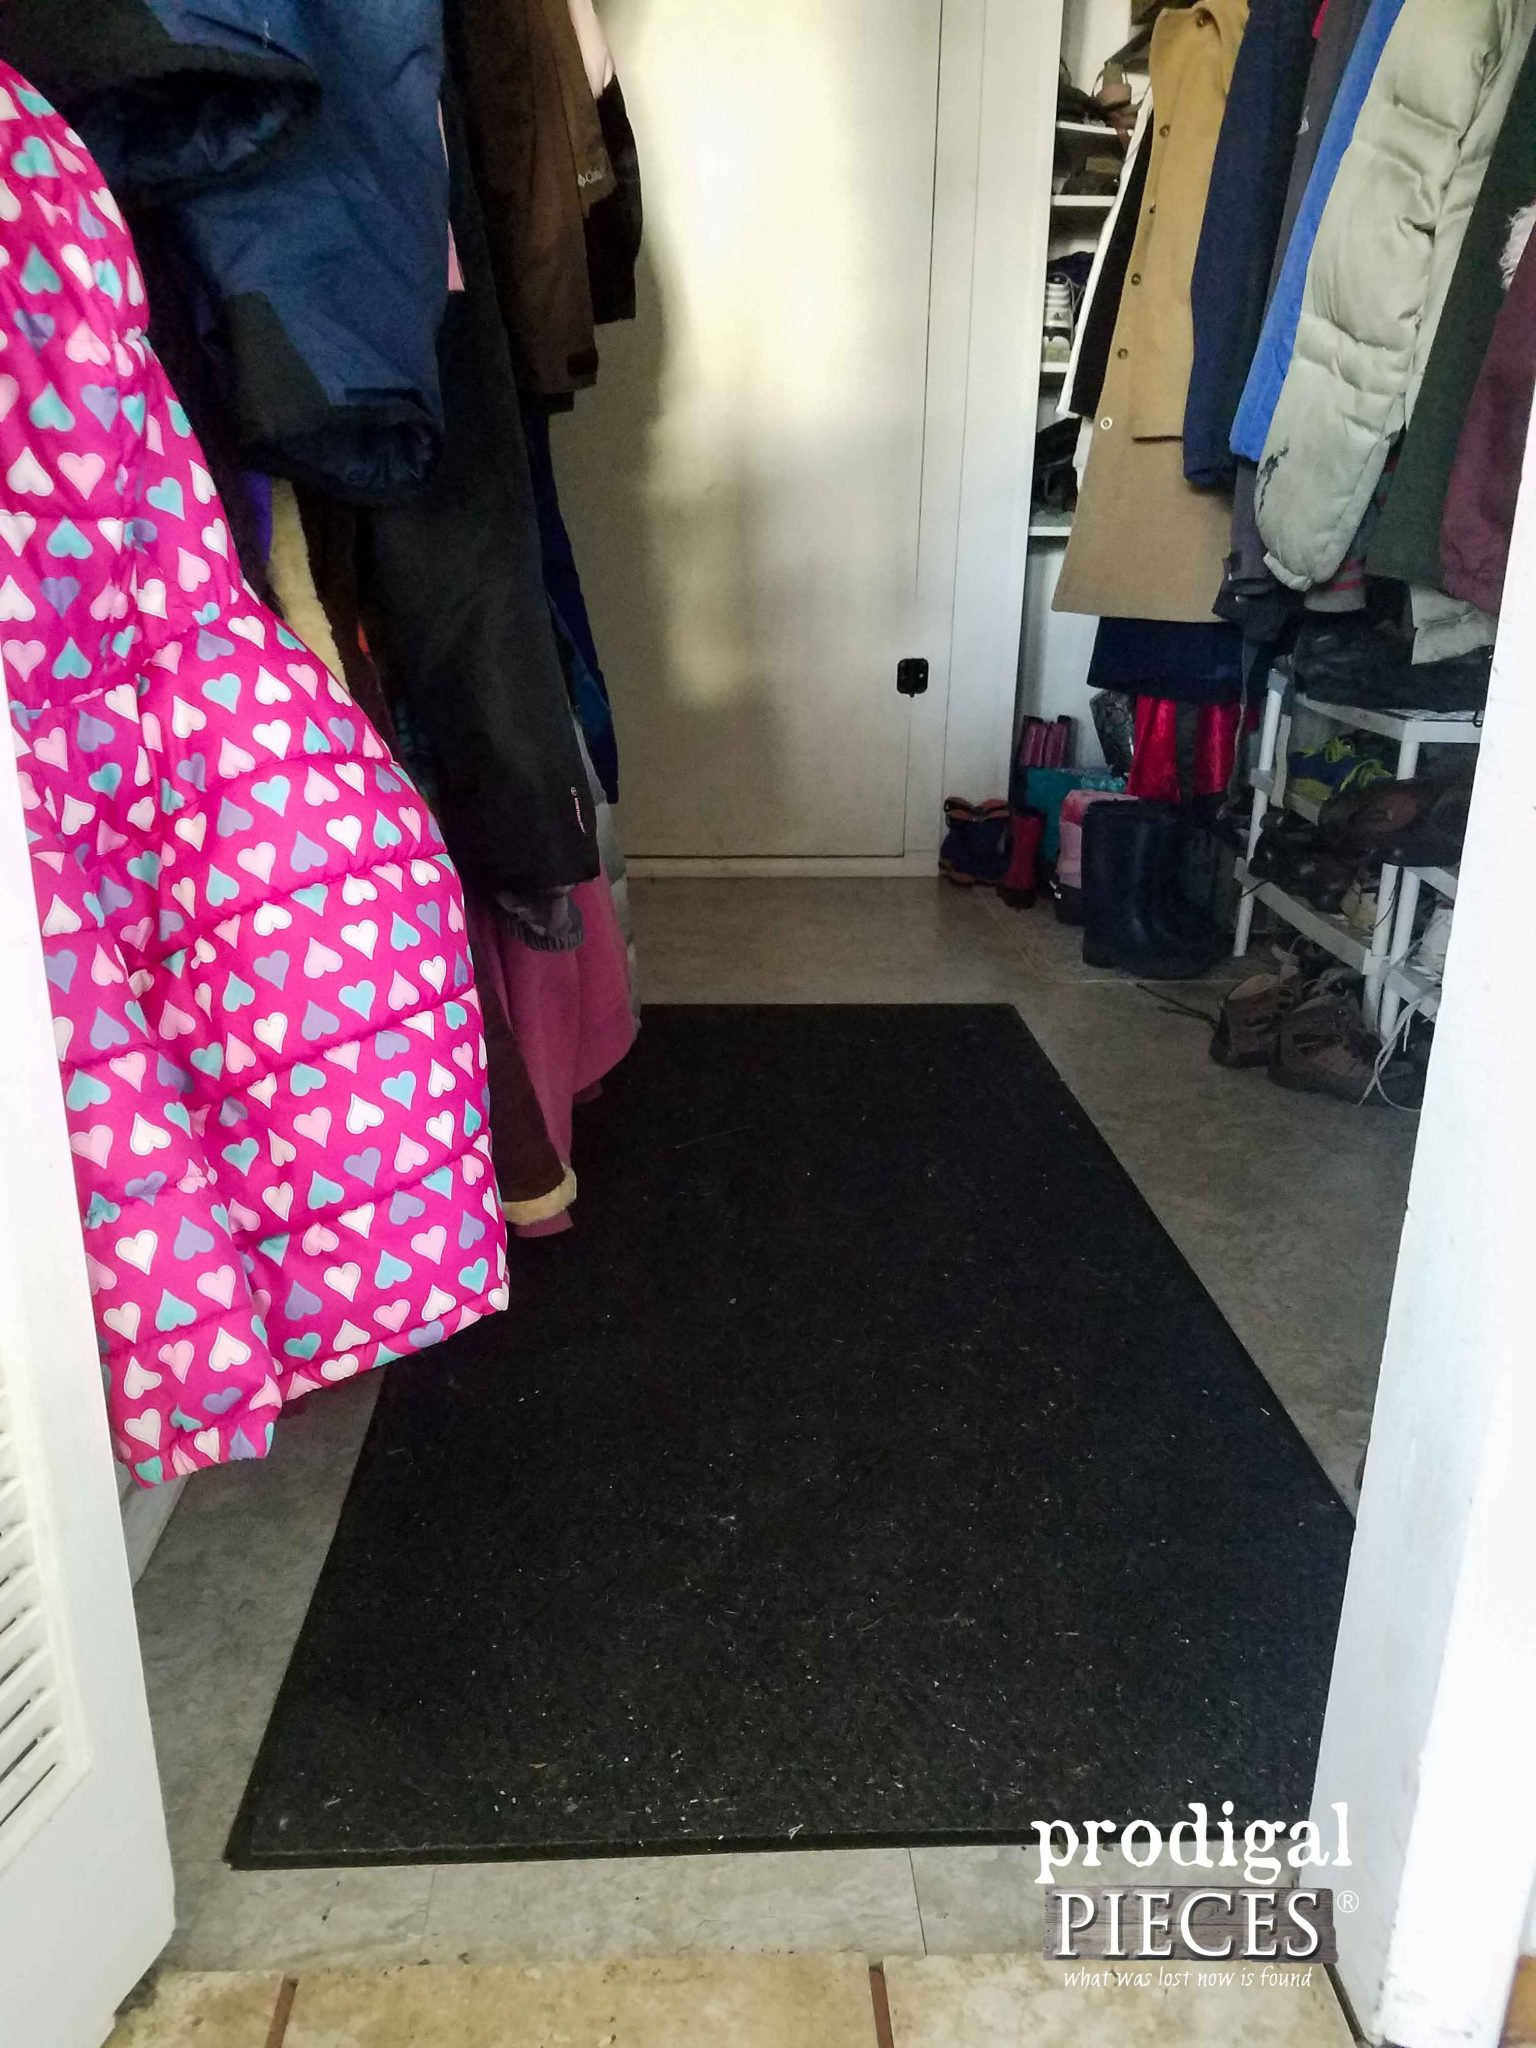 Mudroom Rug Before | Prodigal Pieces | prodigalpieces.com